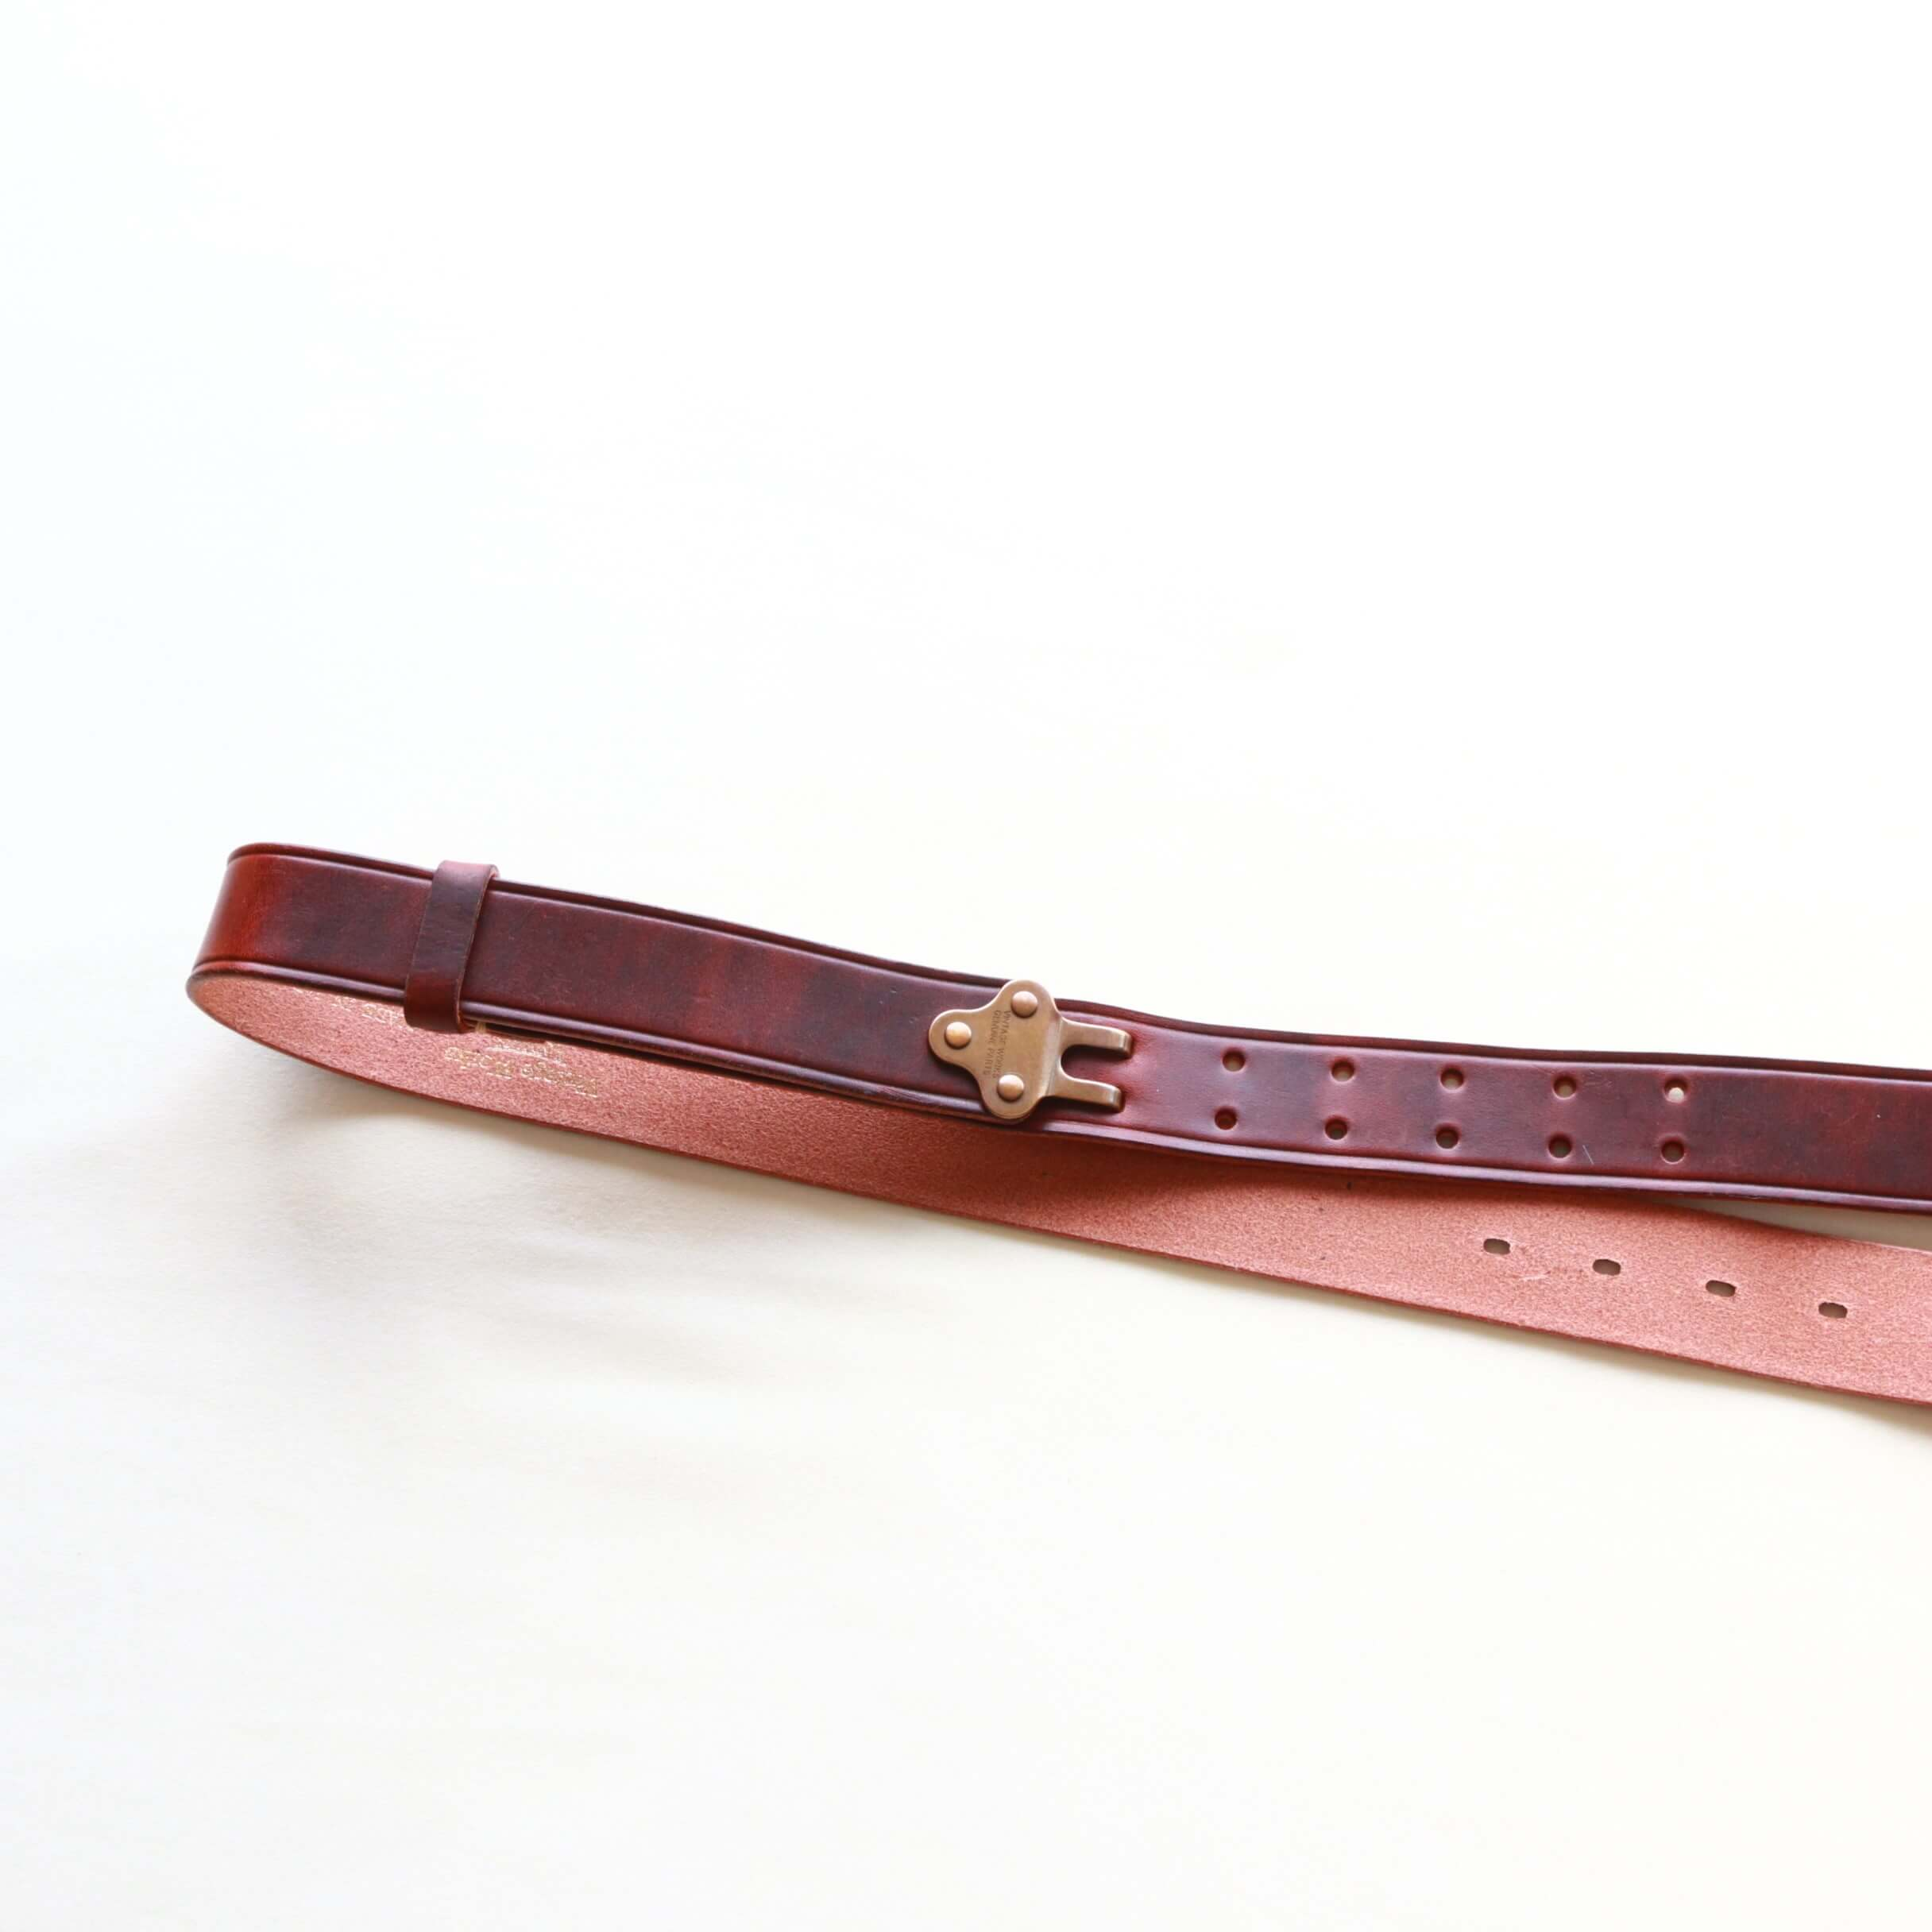 Vintage Works ヴィンテージワークス Leather belt 5Hole レザーベルト 5ホール DH5698